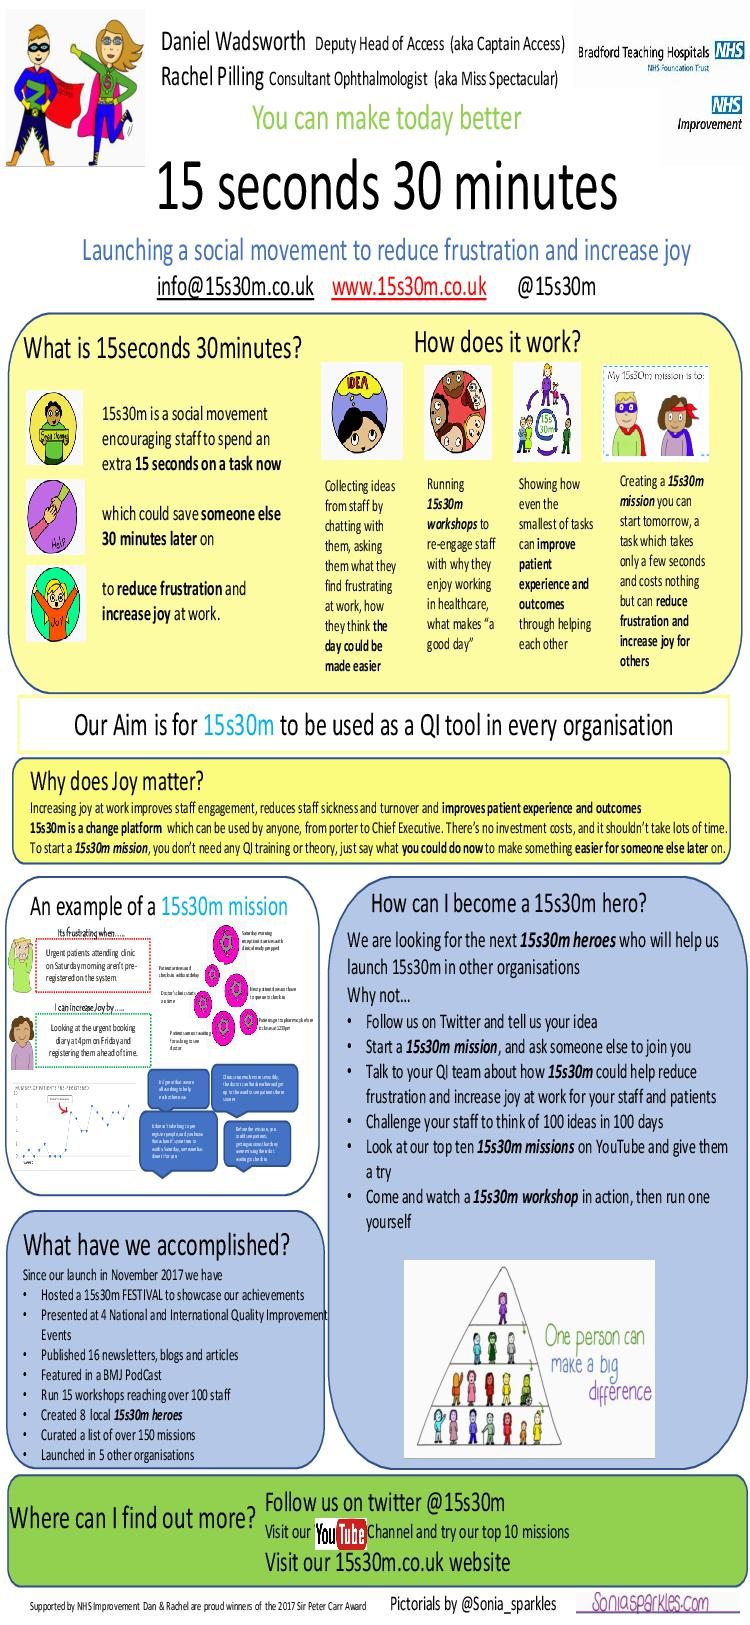 poster ihi orlando v3   pilling wadsworth